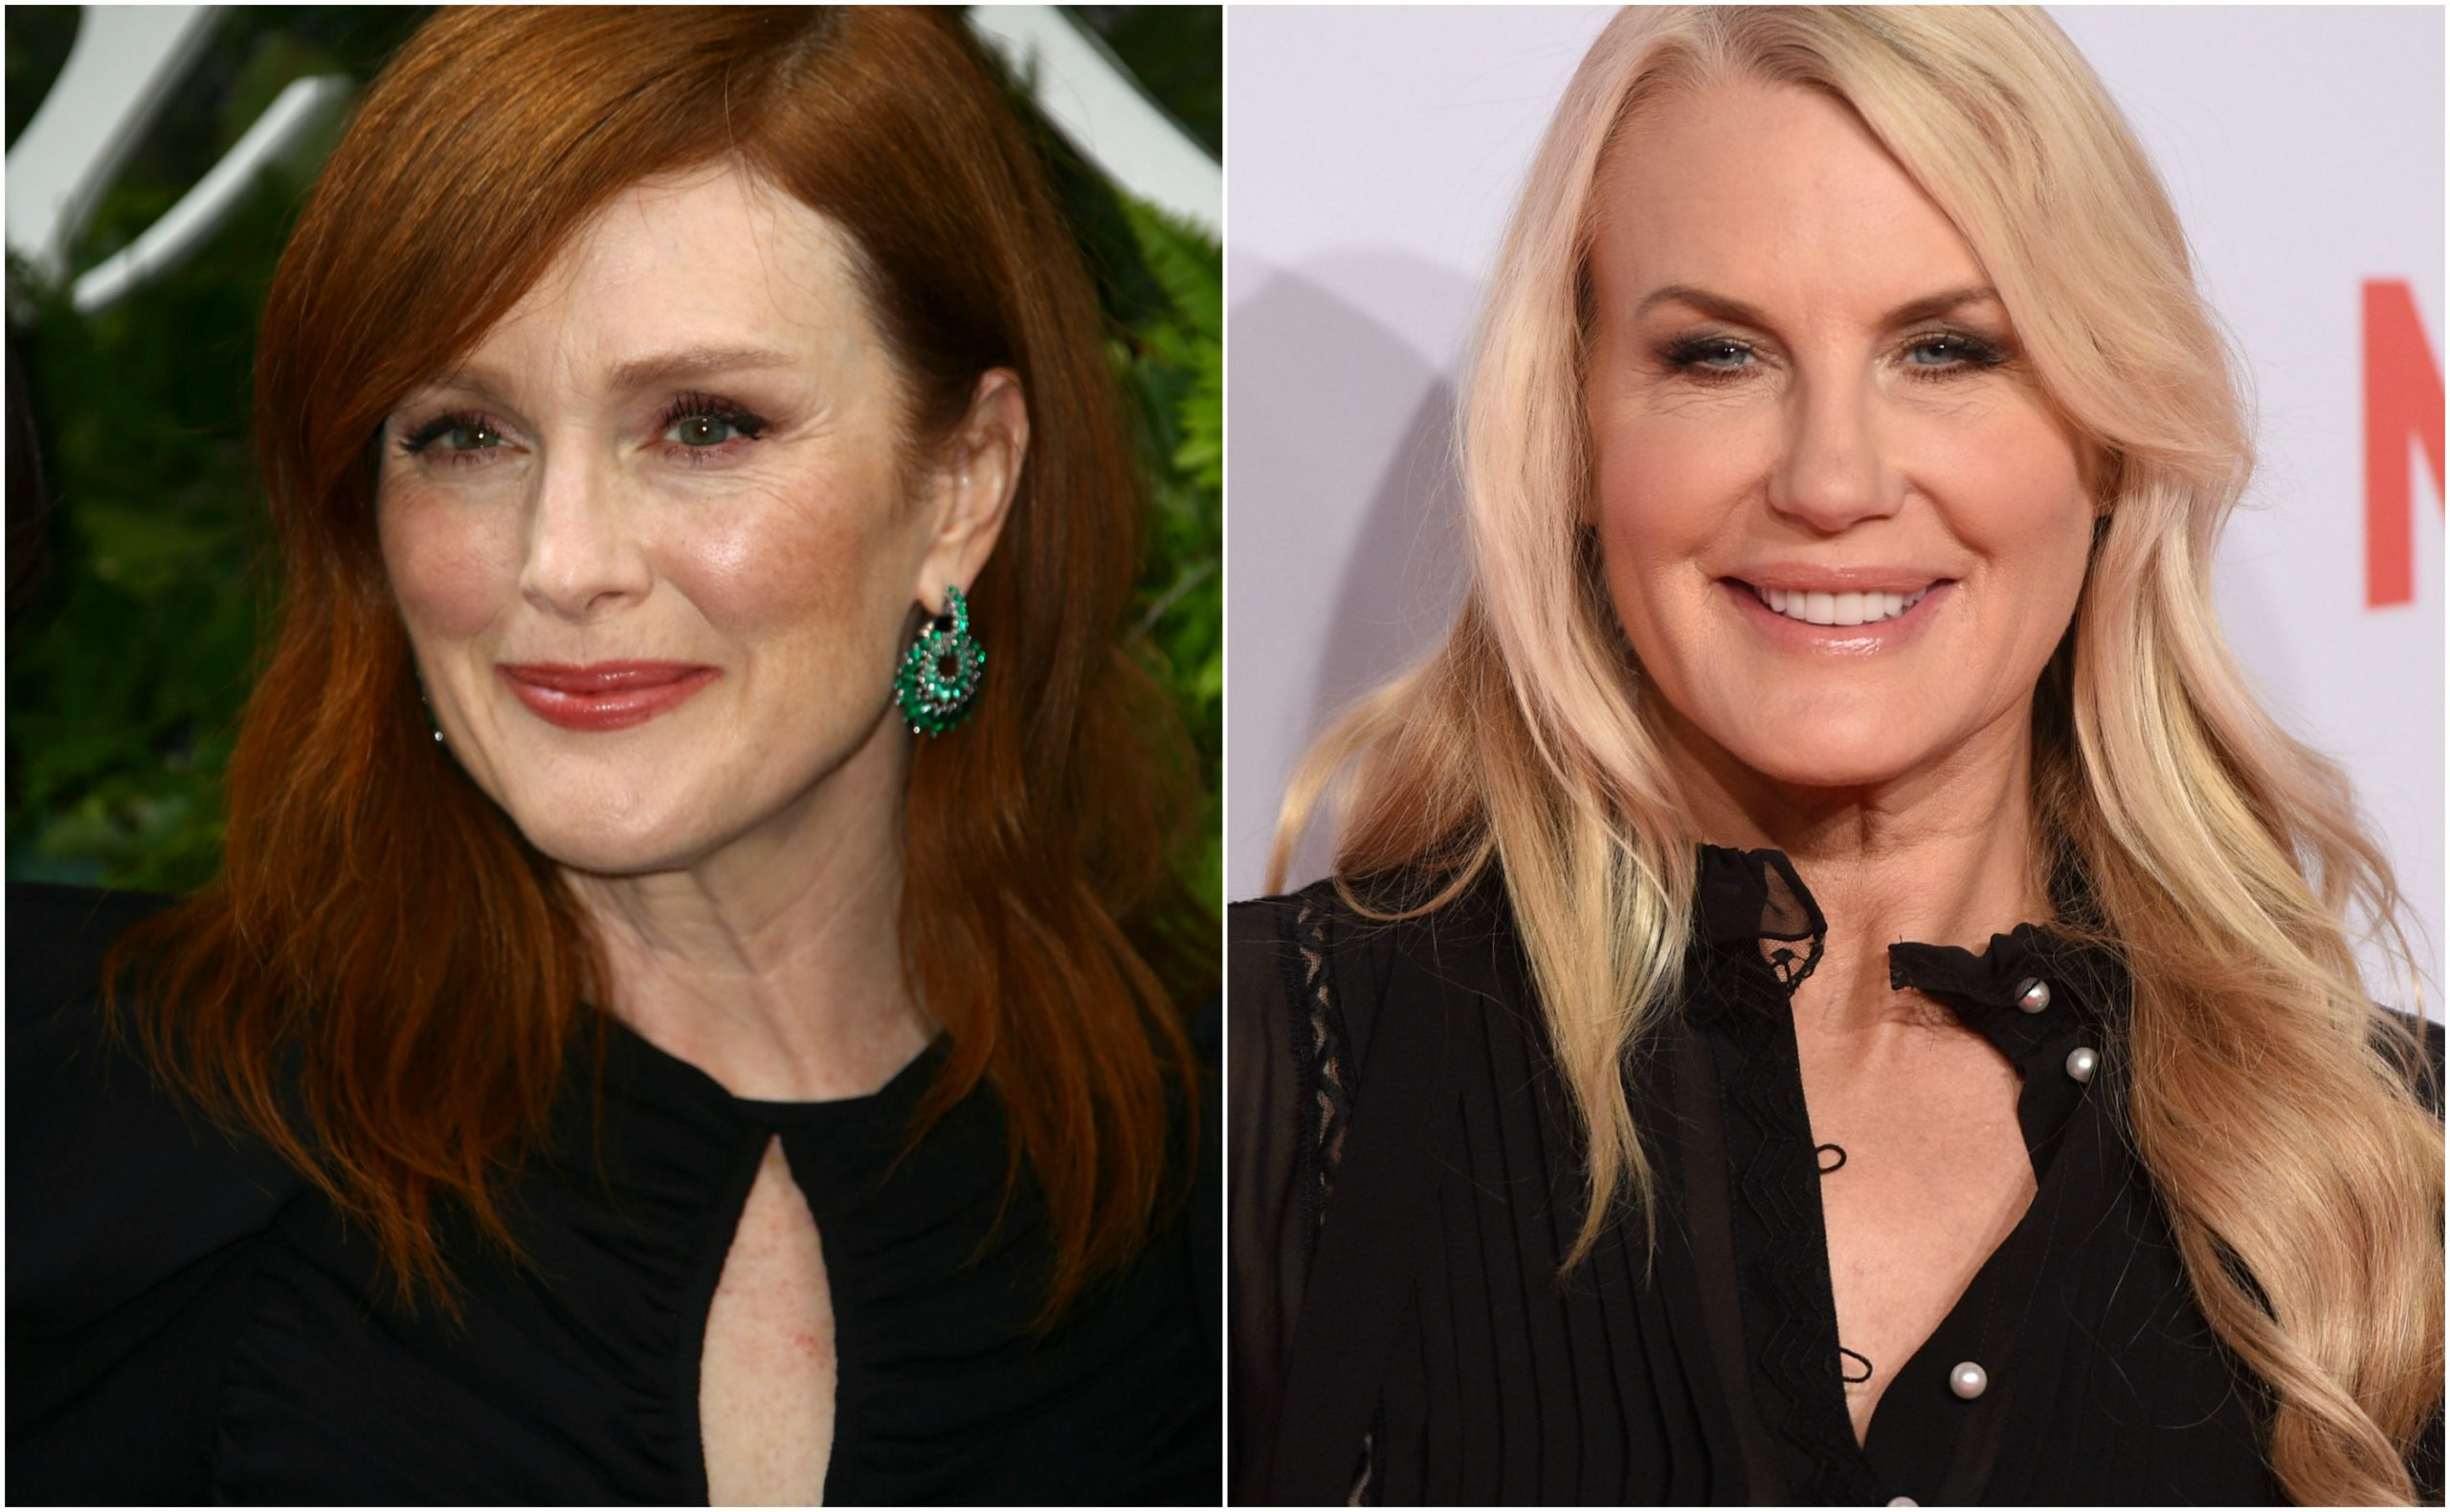 Celebrities from the same year. Who's aged better?